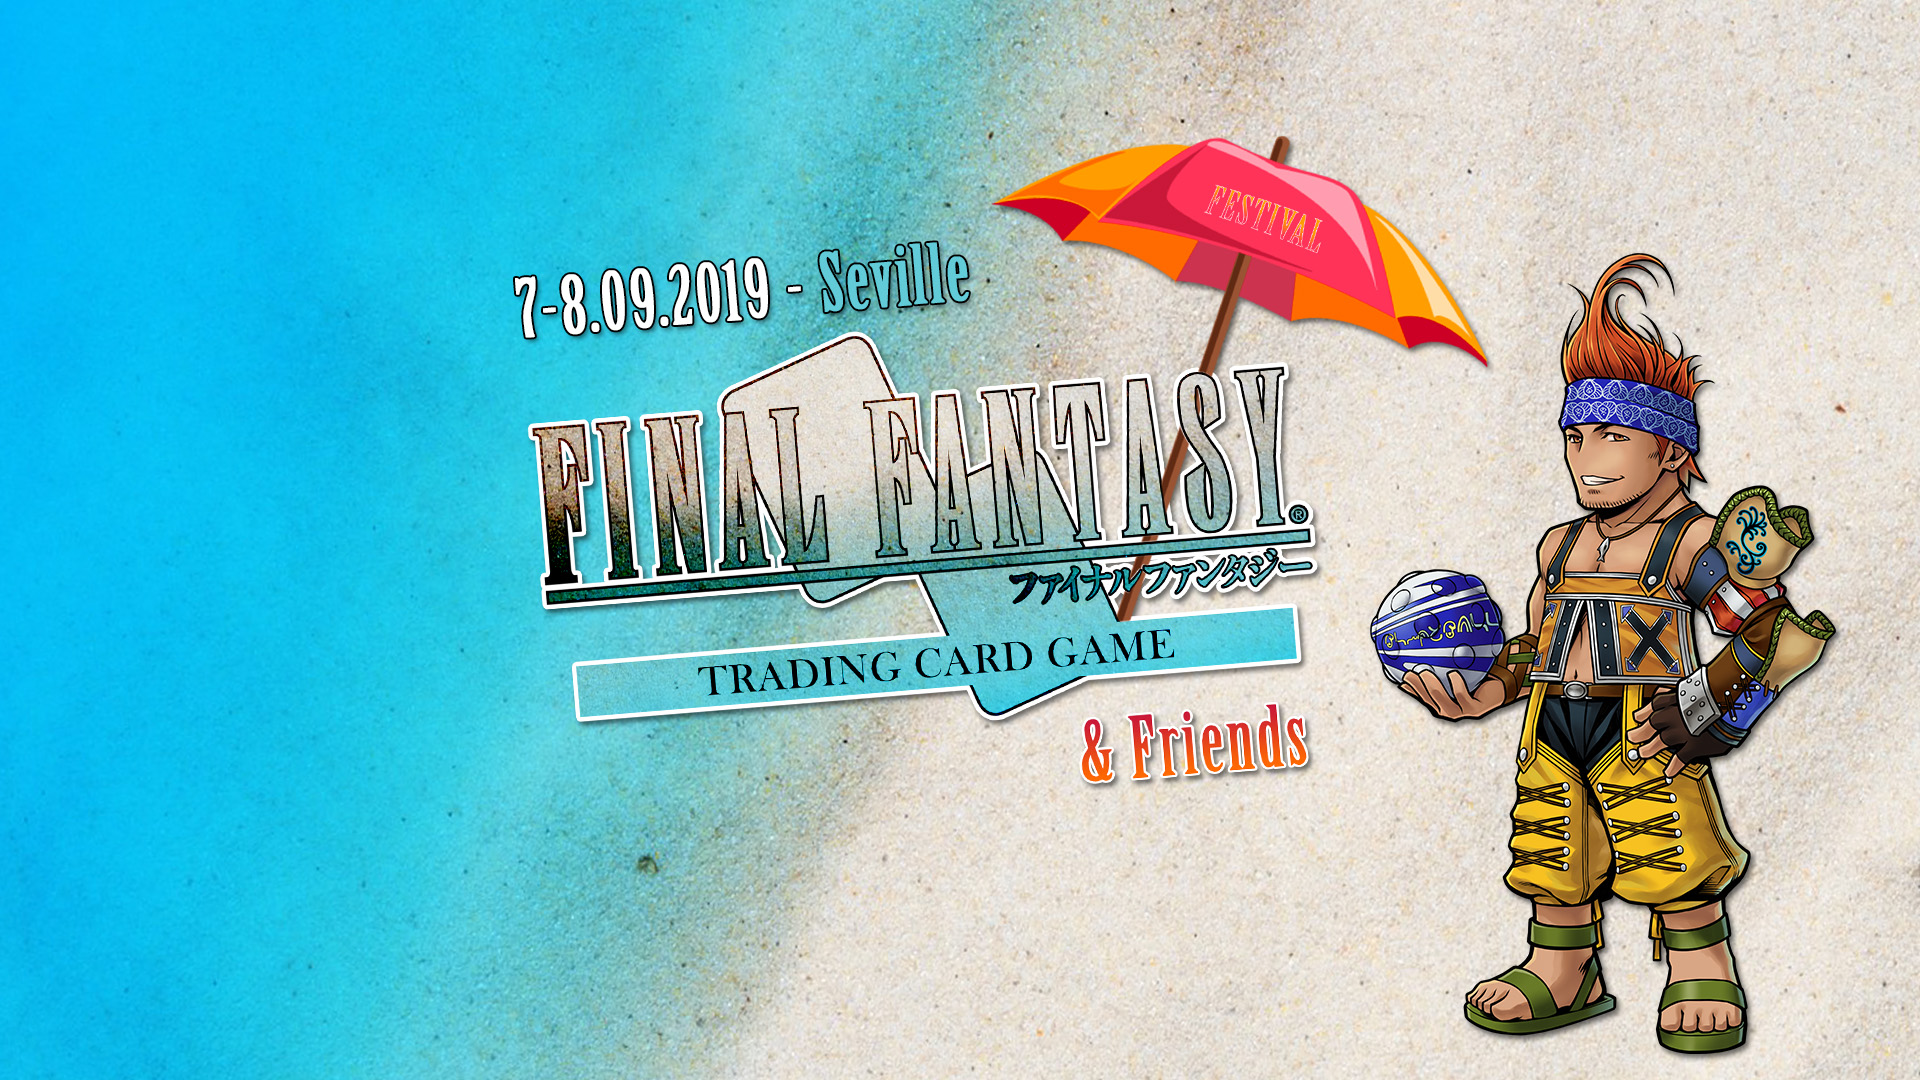 Final Fantasy TCG & Friends Festival Format Overview